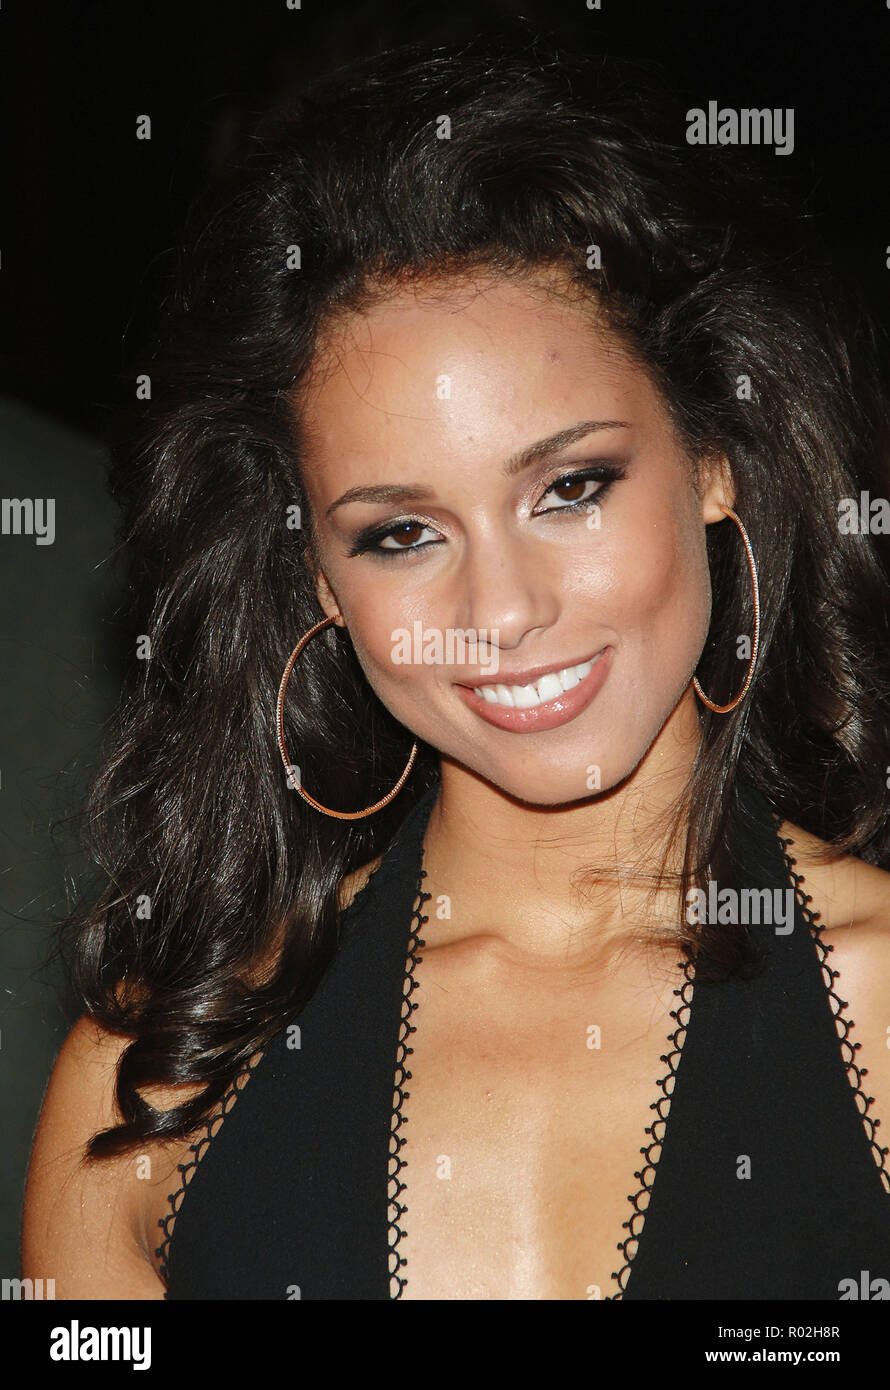 Alicia Keys arriving at the Smokin' Aces at the Chinese Theatre In Los Angeles. January 18, 2007.  eye contact smile portrait headshot KeysAlicia031 Red Carpet Event, Vertical, USA, Film Industry, Celebrities,  Photography, Bestof, Arts Culture and Entertainment, Topix Celebrities fashion /  Vertical, Best of, Event in Hollywood Life - California,  Red Carpet and backstage, USA, Film Industry, Celebrities,  movie celebrities, TV celebrities, Music celebrities, Photography, Bestof, Arts Culture and Entertainment,  Topix, headshot, vertical, one person,, from the year , 2007, inquiry tsuni@Gamma - Stock Image